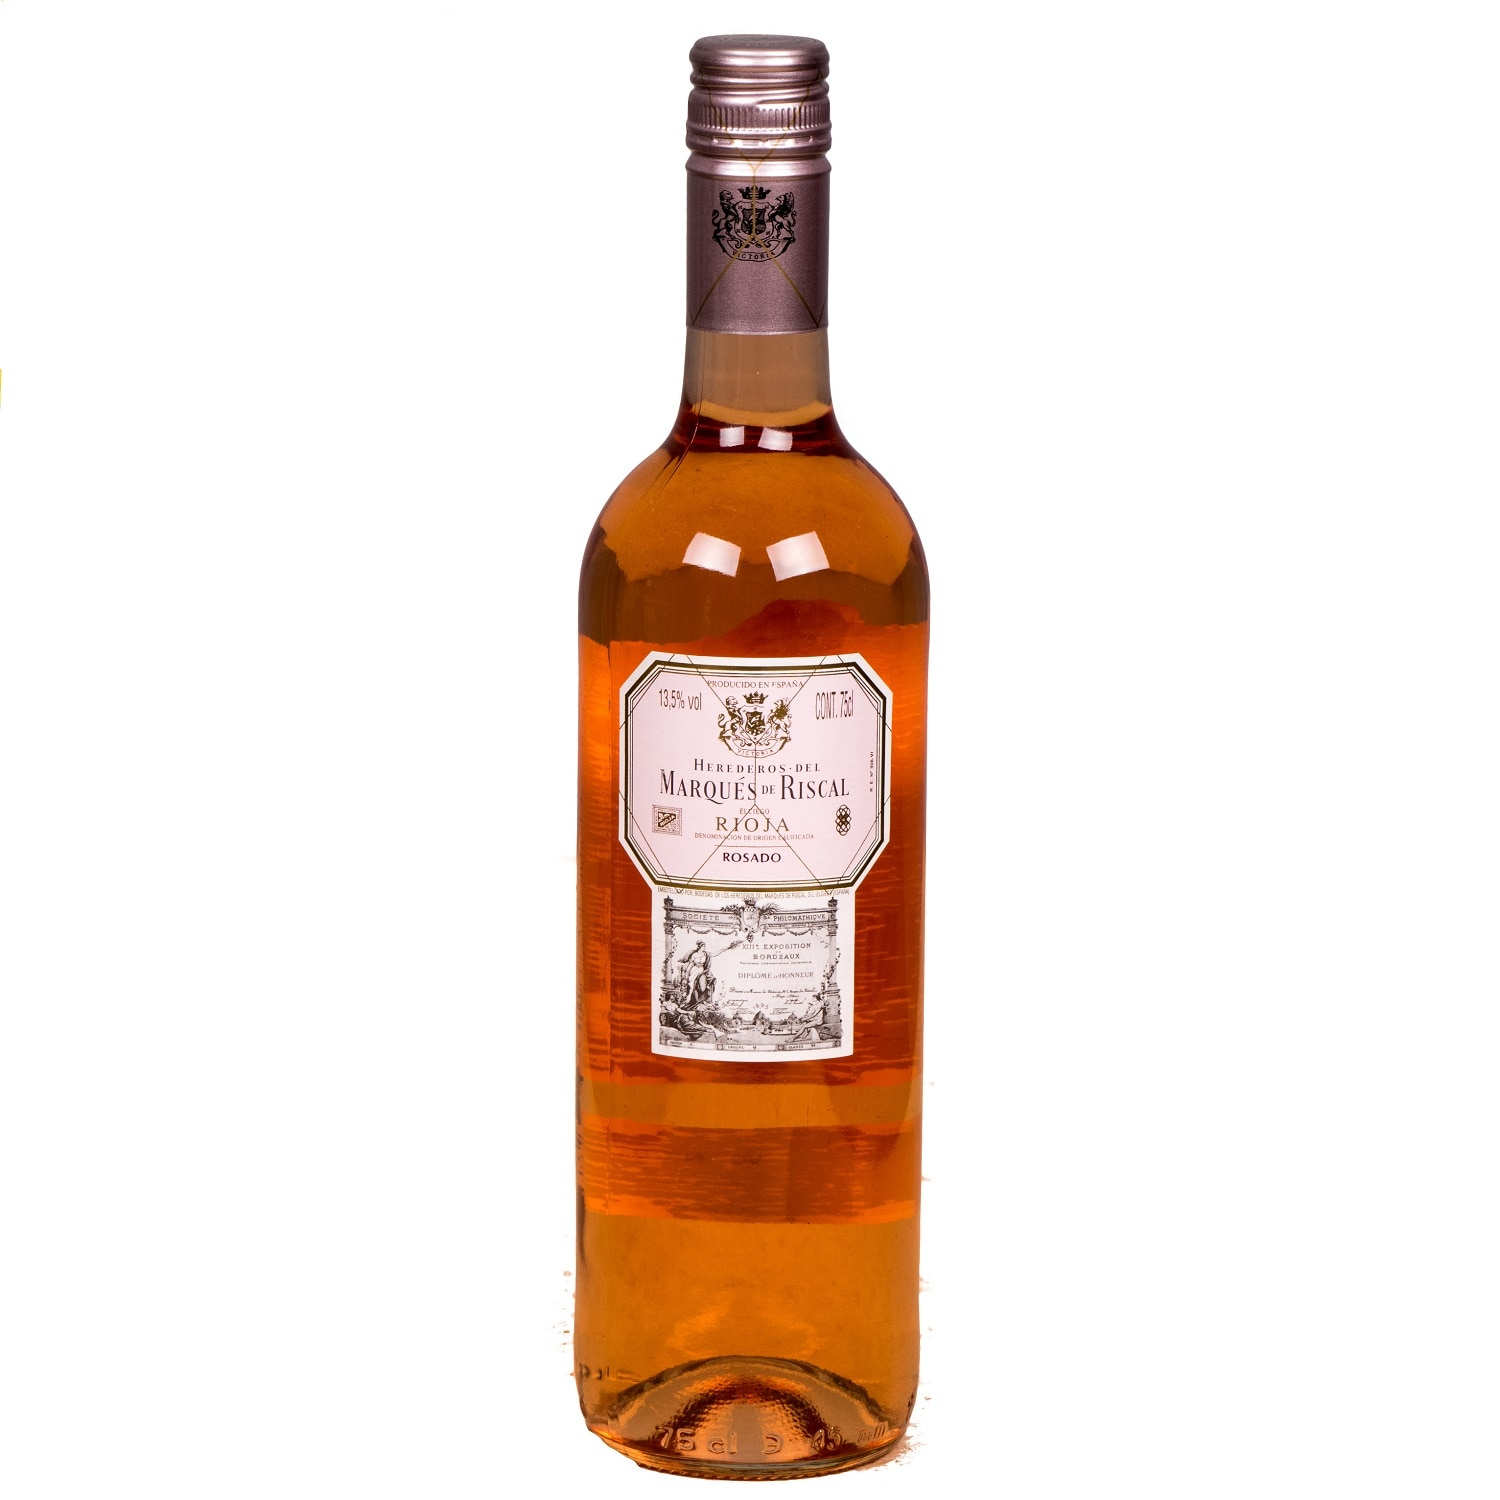 Marques de Riscal Rosewein 75cl